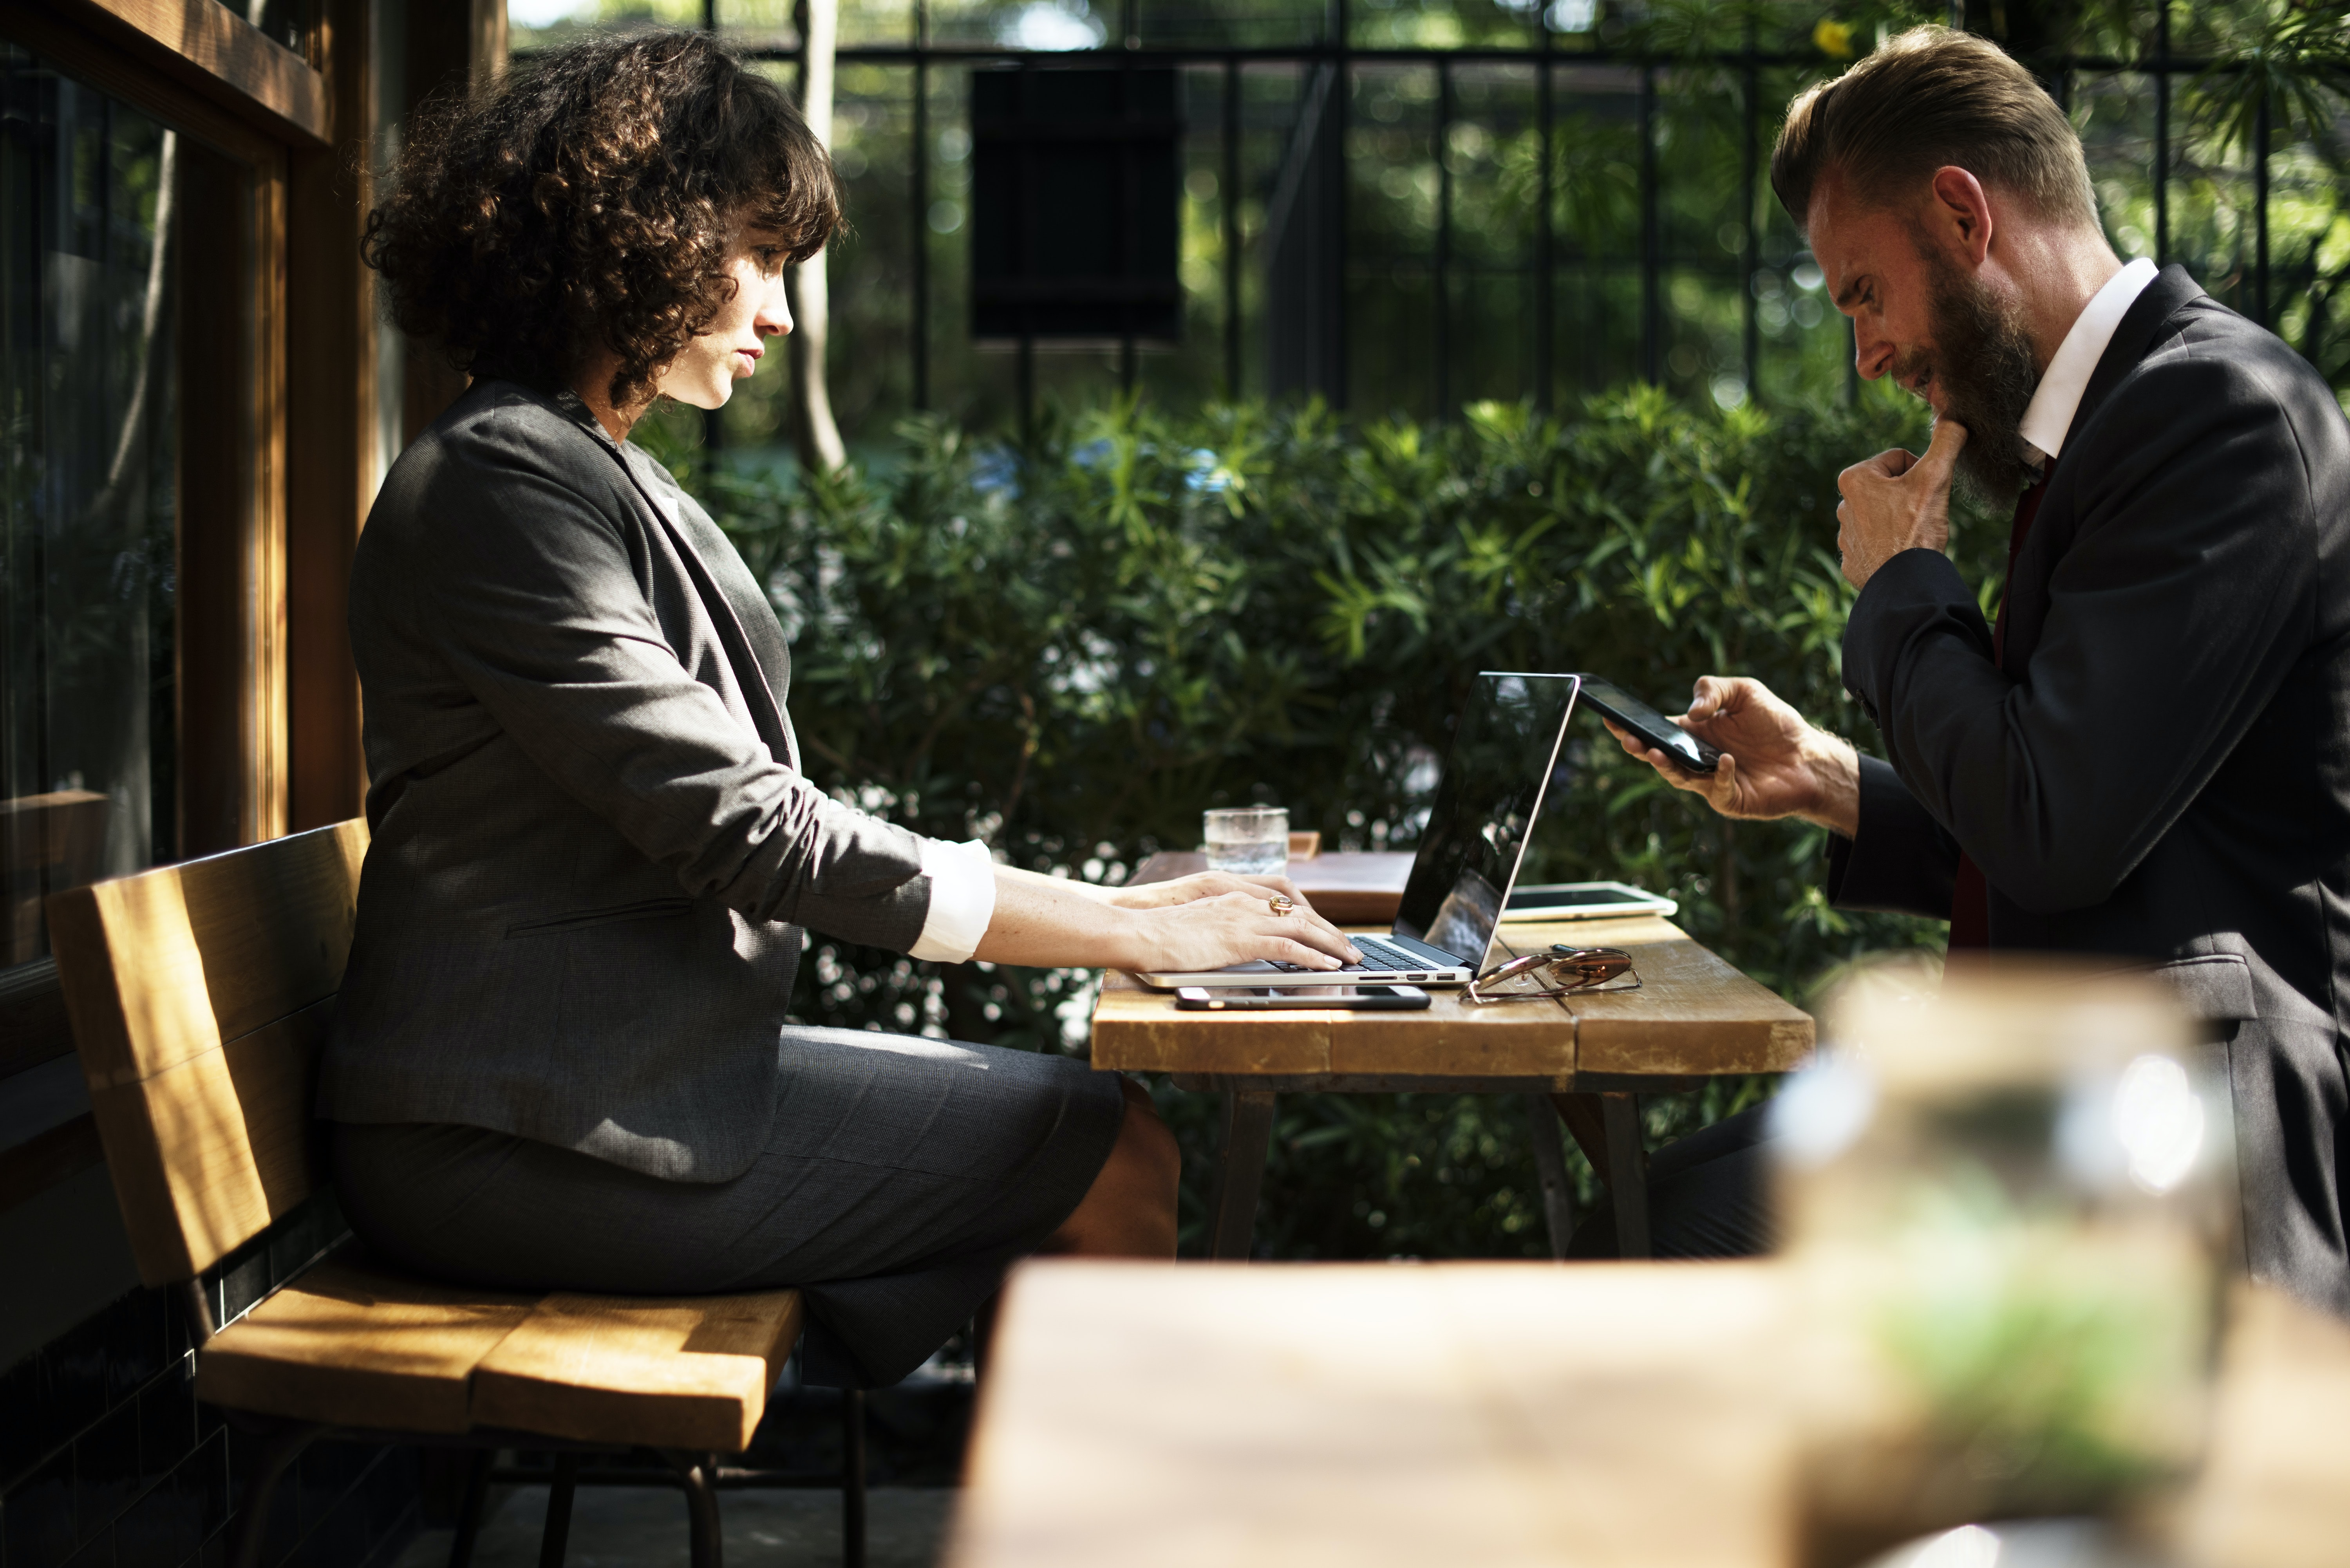 Two people in business attire sitting at an outdoor table with electronic devices